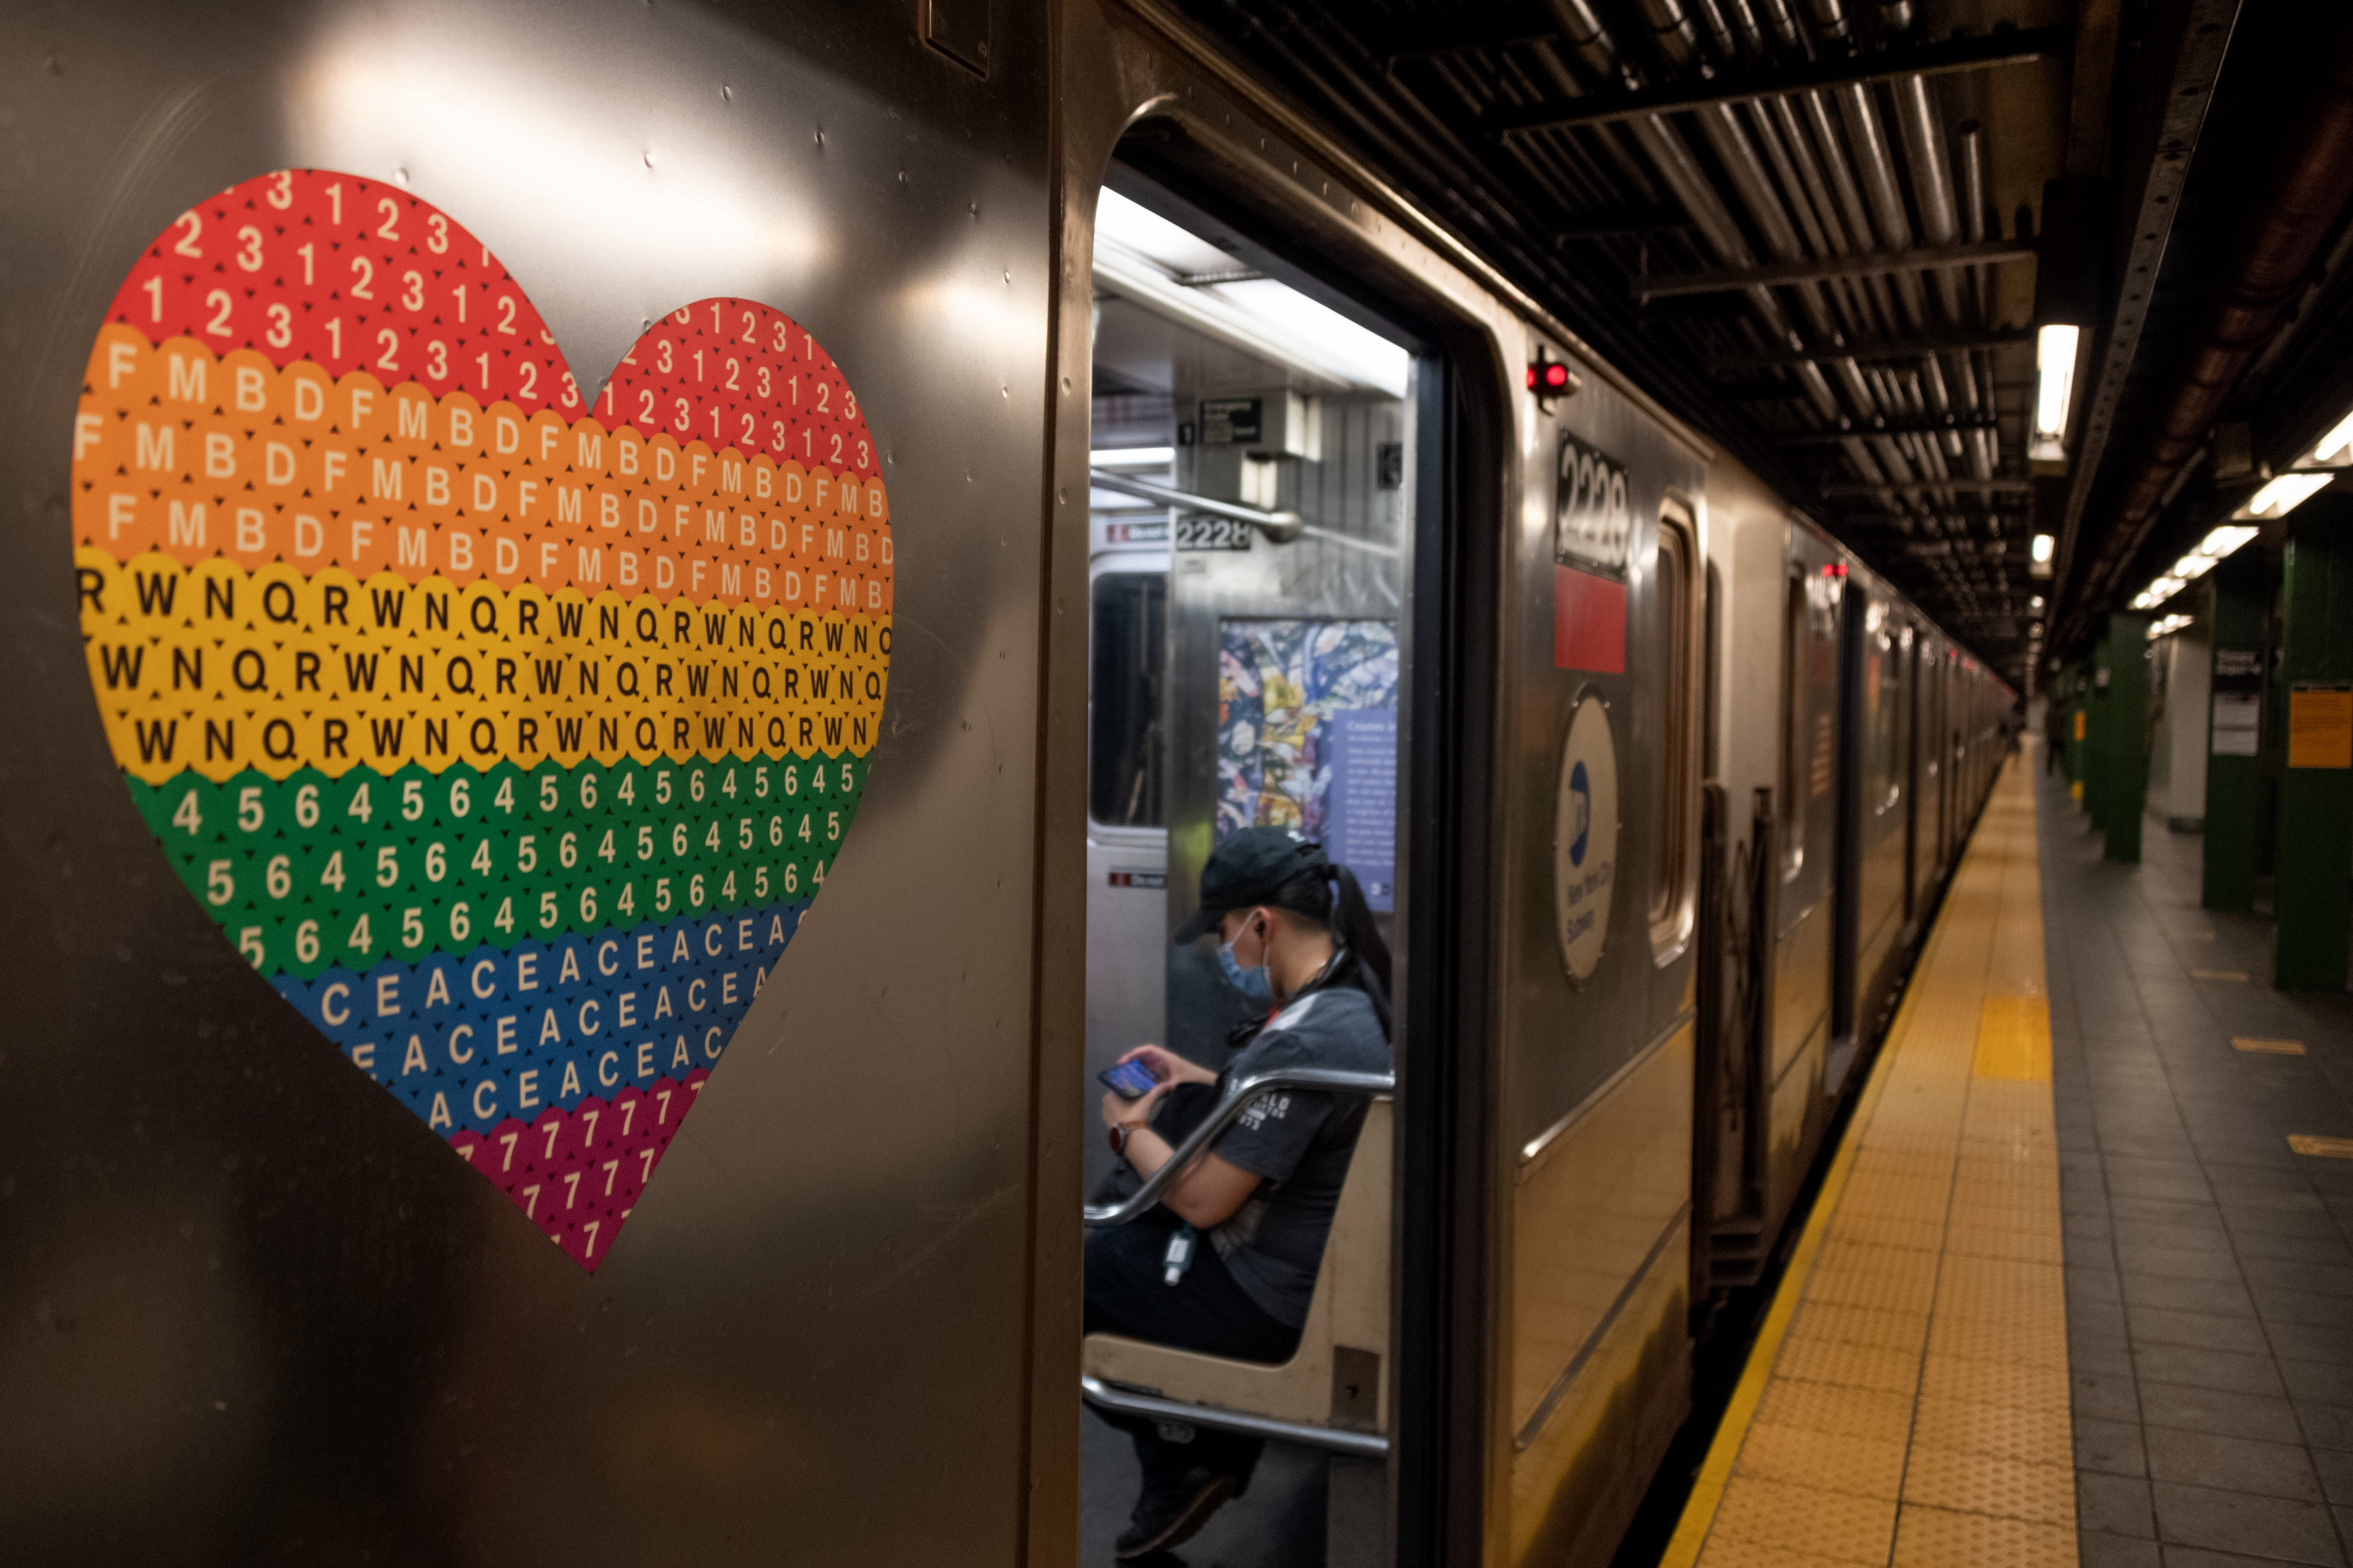 A pride colored heart is seen on a subway car near a person wearing a mask as the city moves into Phase 2 of re-opening following restrictions imposed to curb the coronavirus pandemic on June 25, 2020 in New York City.